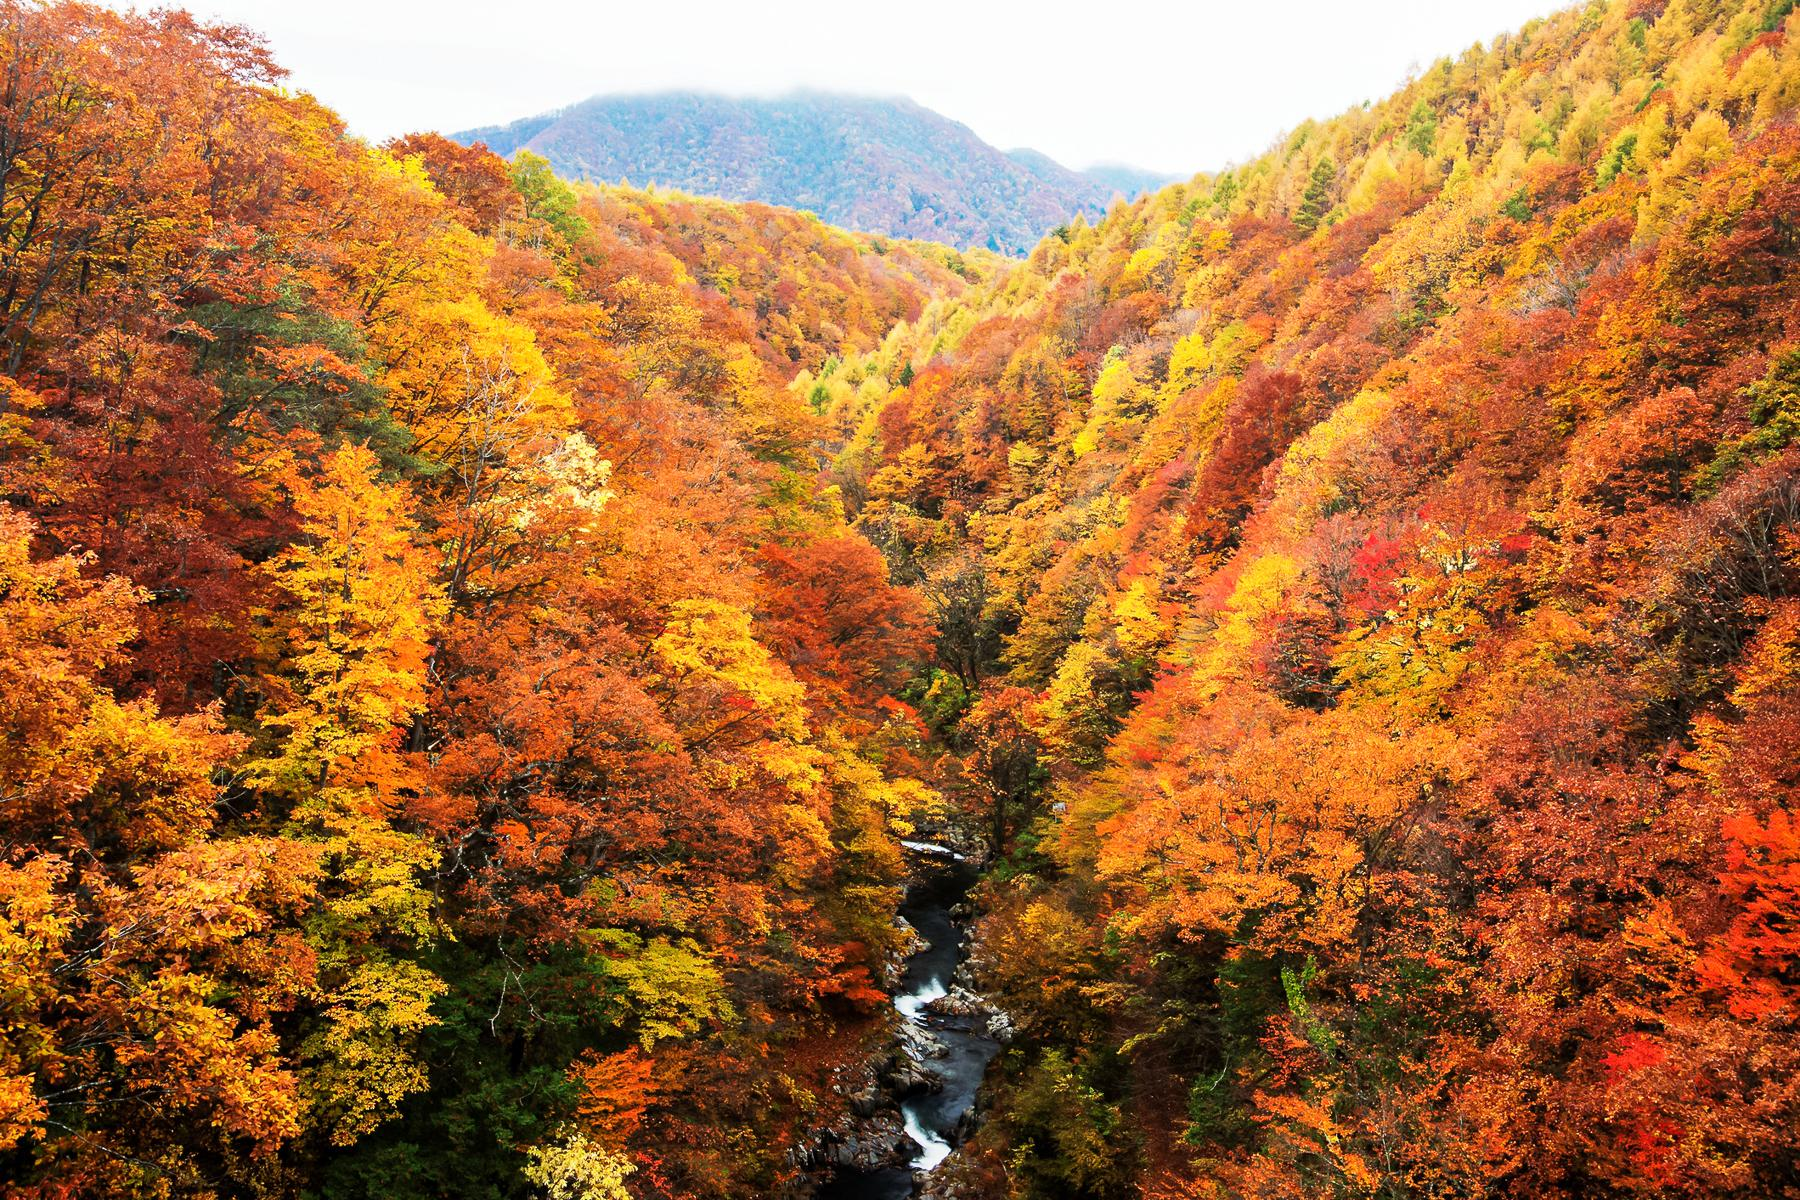 How to Plan and Execute the Perfect Fall Foliage Tour